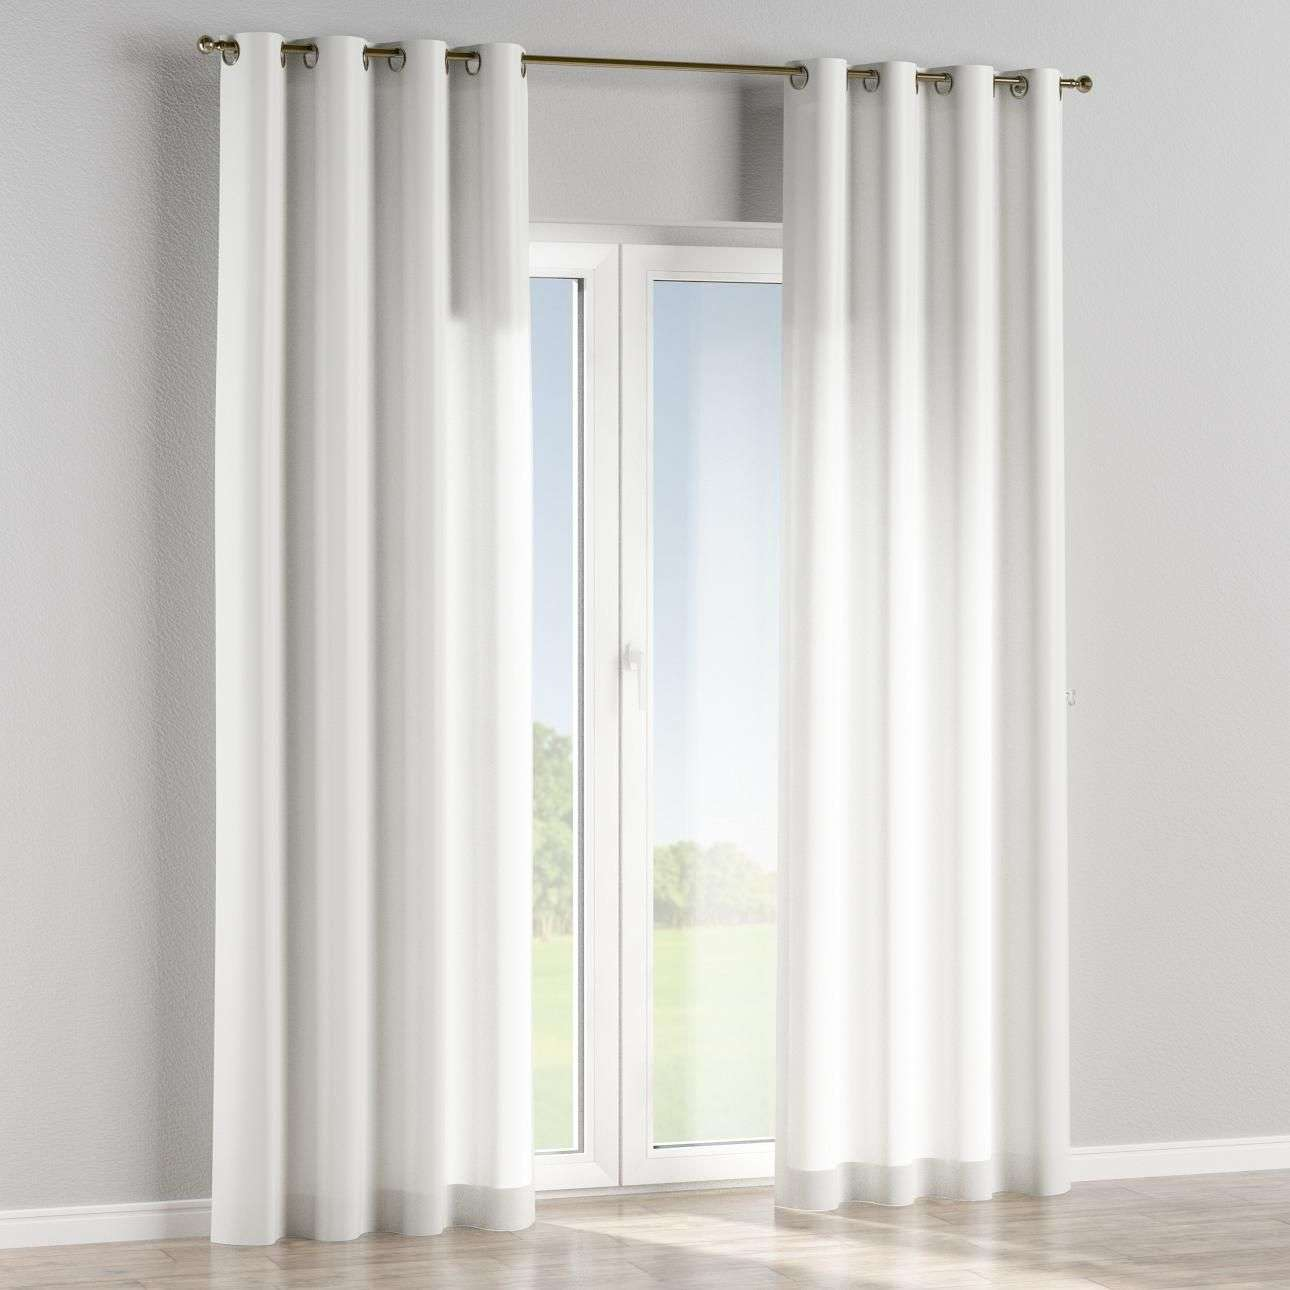 Eyelet curtains in collection Milano, fabric: 150-35